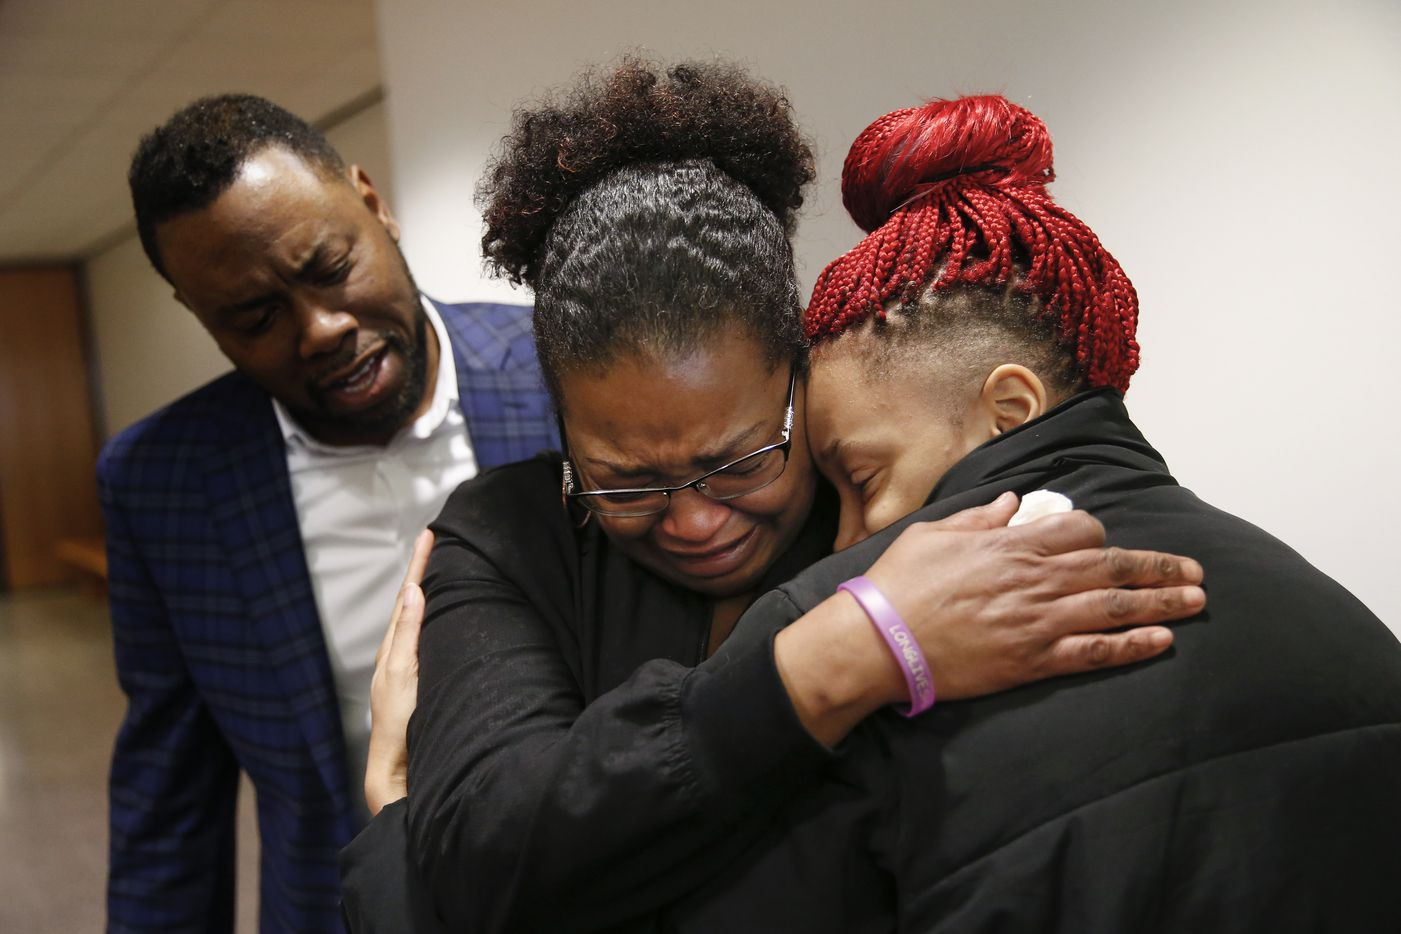 Shaquana Persley (center), mother of slain 13-year-old Shavon Randle, embraced daughter Shiniece Richards after Desmond Jones, one of the men implicated in the kidnapping and death of Randle, was sentenced Friday to 99 years in prison. (Ryan Michalesko/The Dallas Morning News)